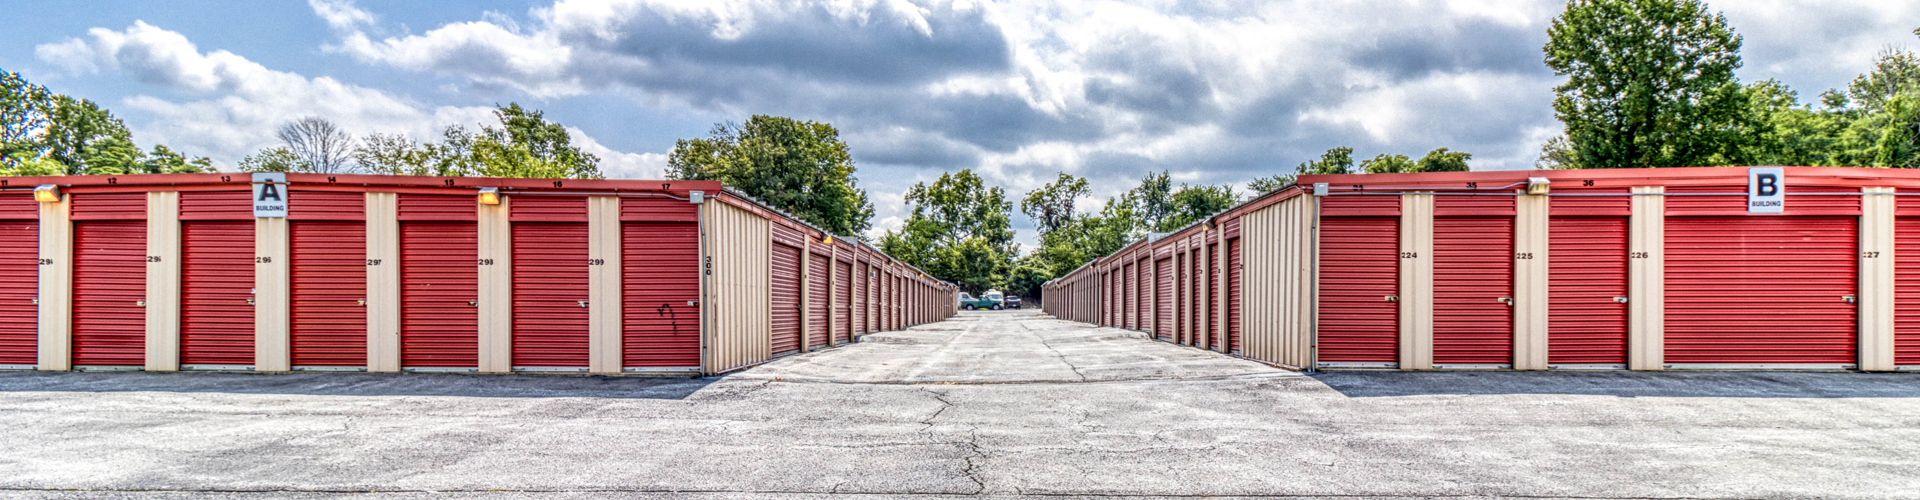 Economy Self Storage in Honey Brook PA